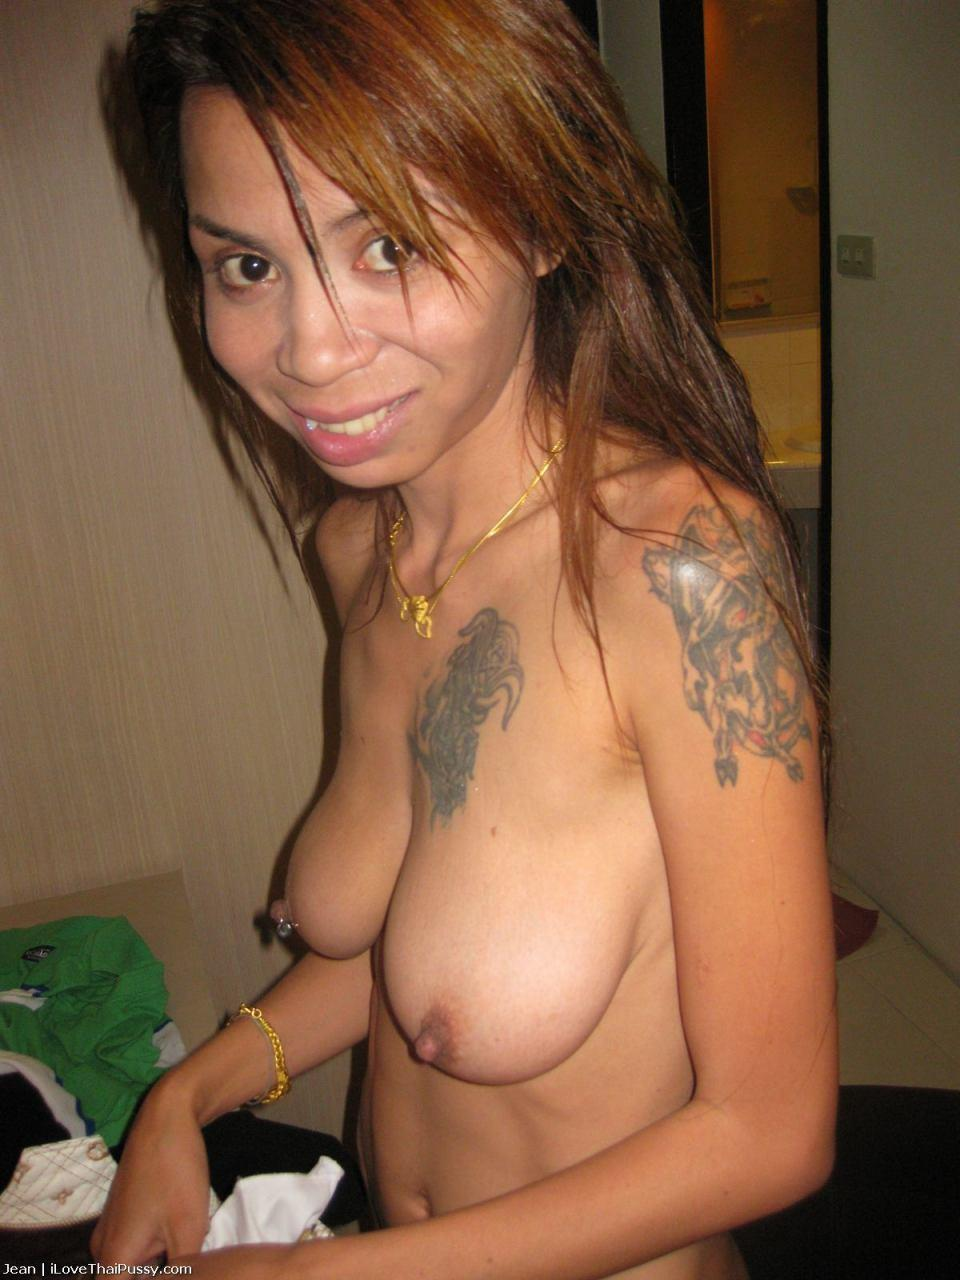 Absolutely nude xxx girls in pattaya apologise, but